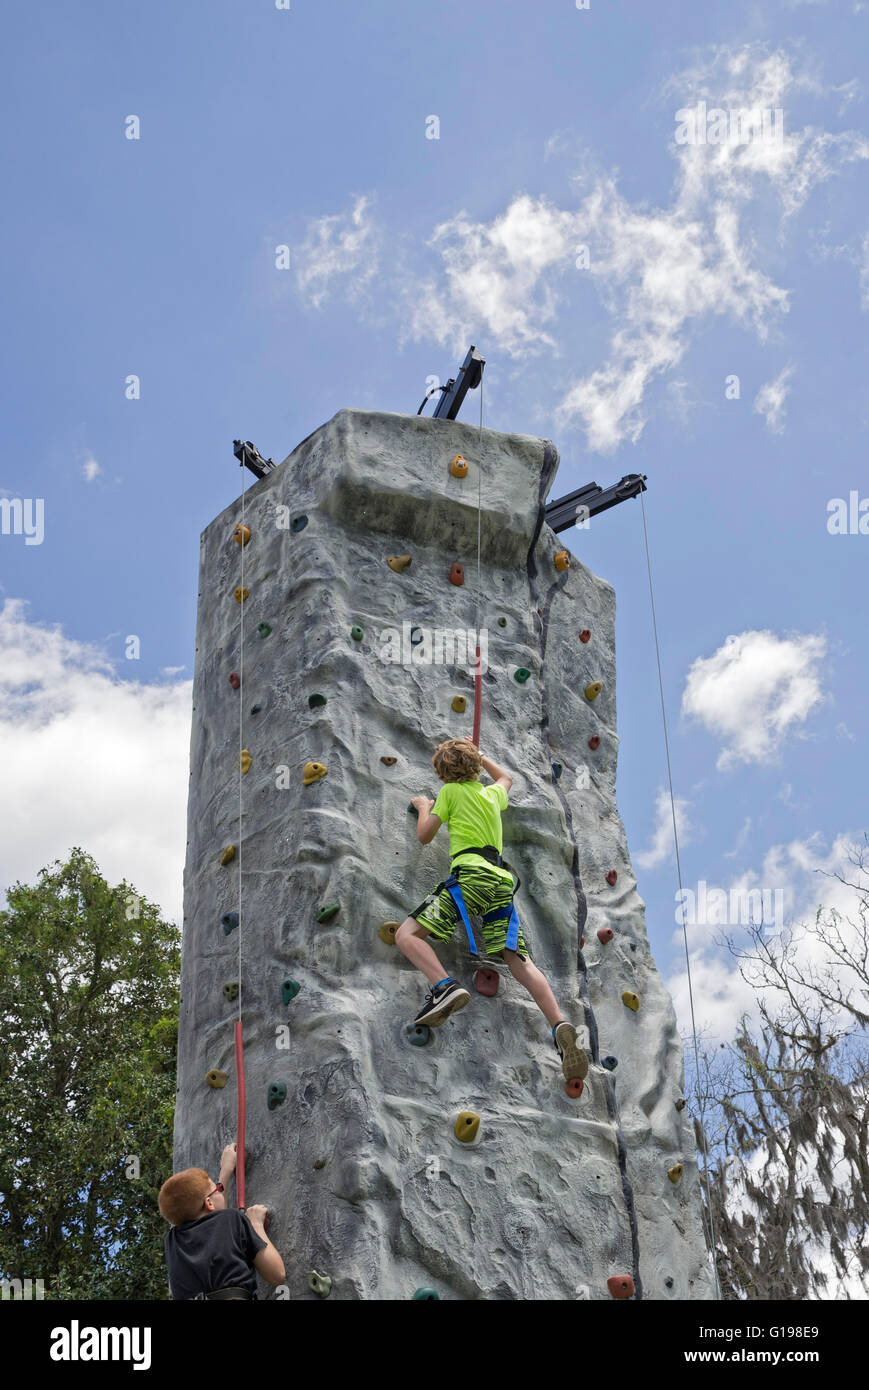 Trying to reach the top of a climbing wall and ring the bell signaling success.  At Pioneer Days annual celebration - Stock Image